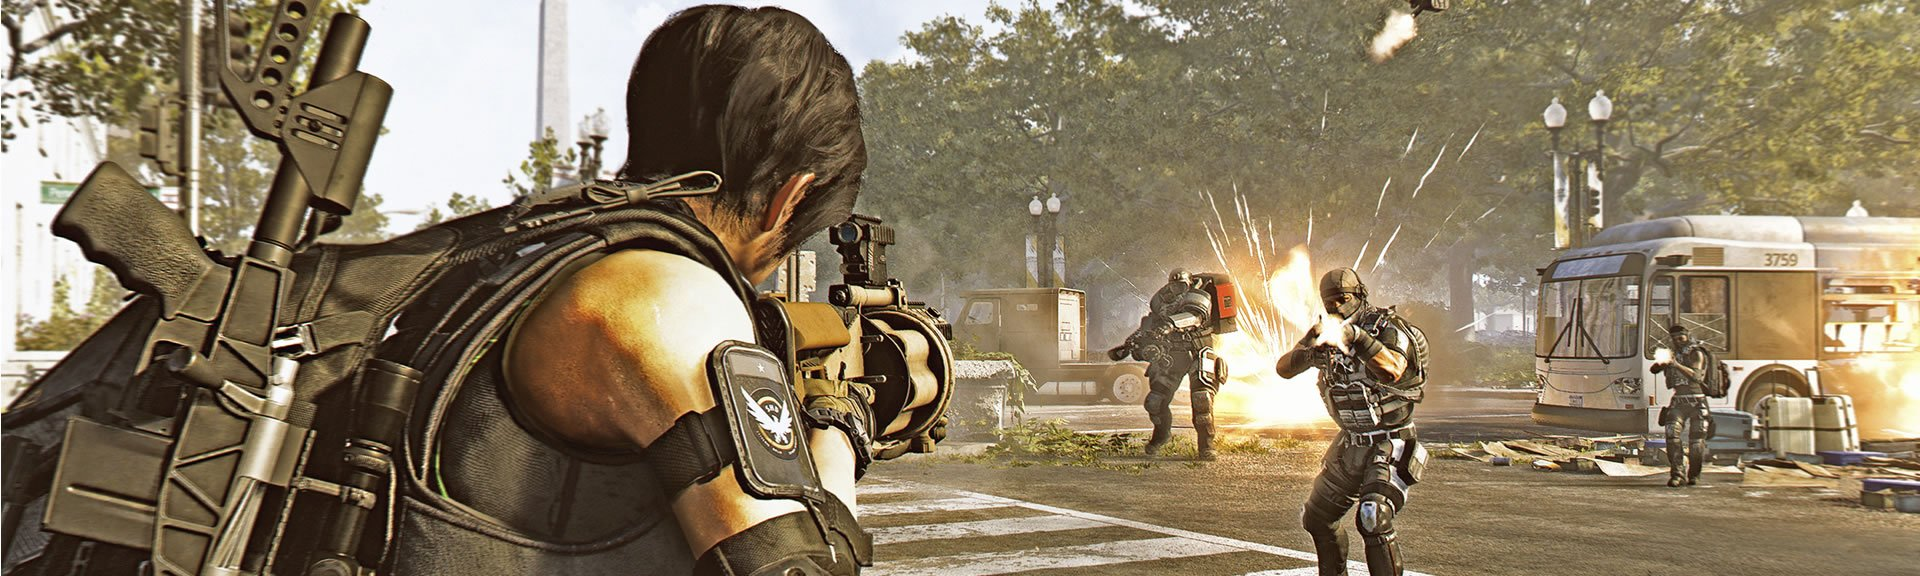 Tom Clancy's The Division 2 game guides - gear and items